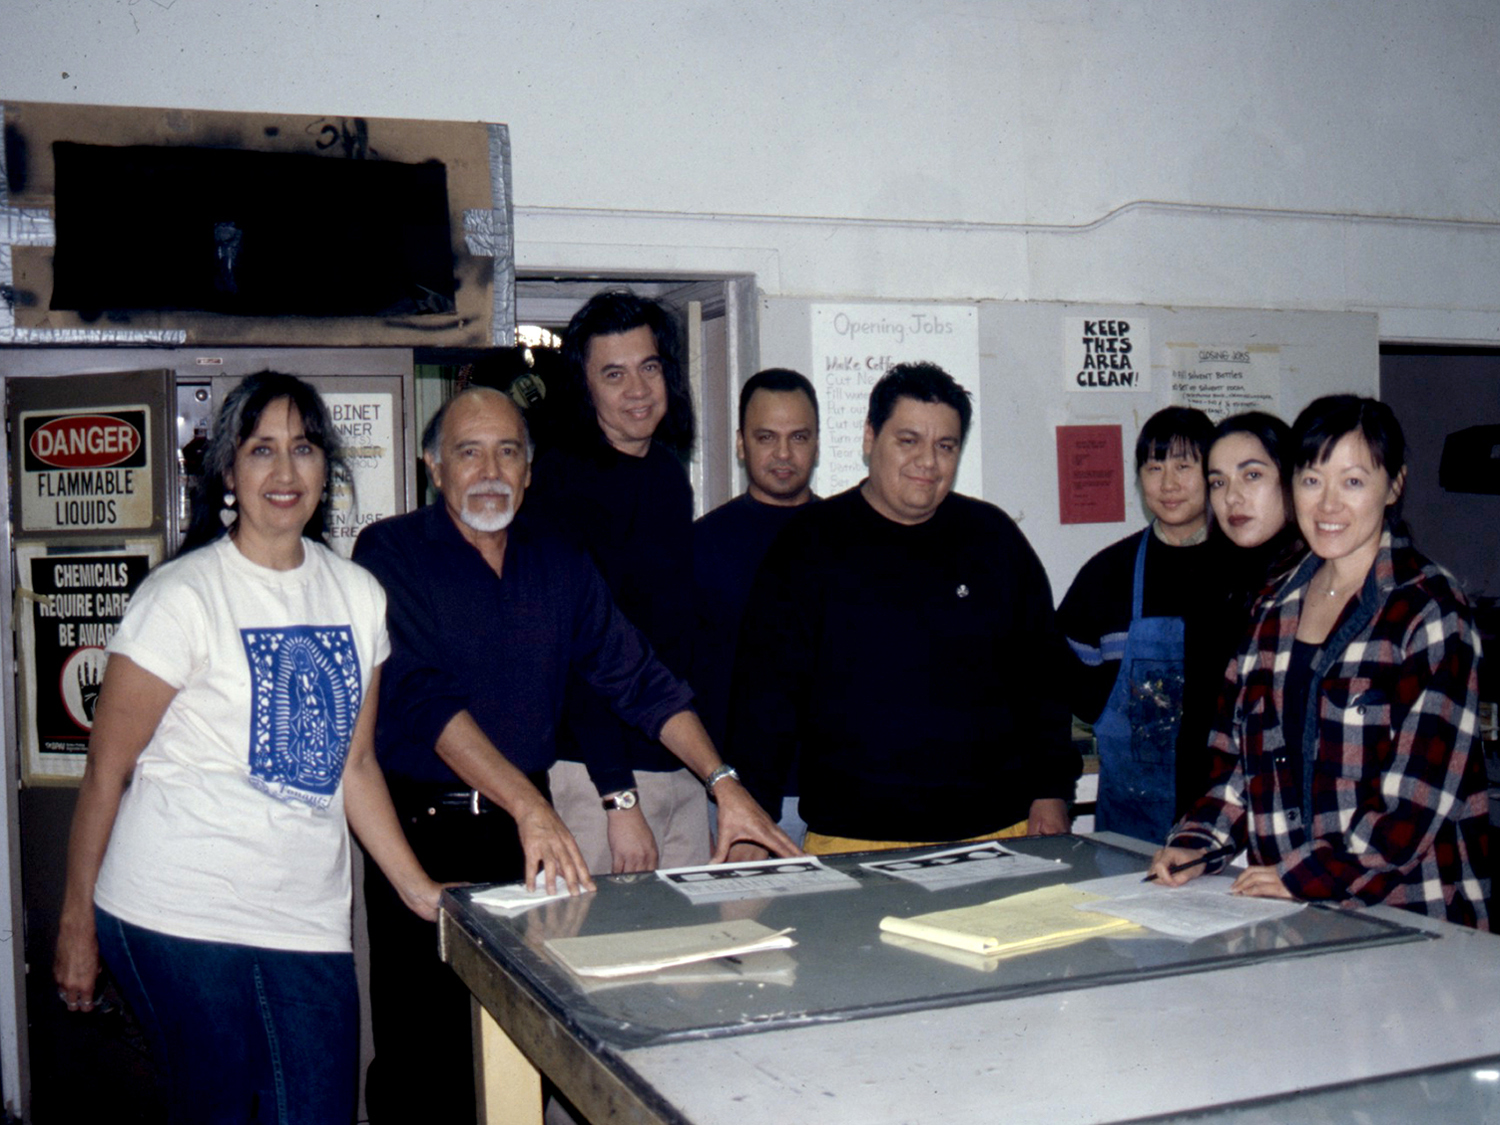 Collaborating artisits from Self Help Graphics, Los Angeles, CA. 2000